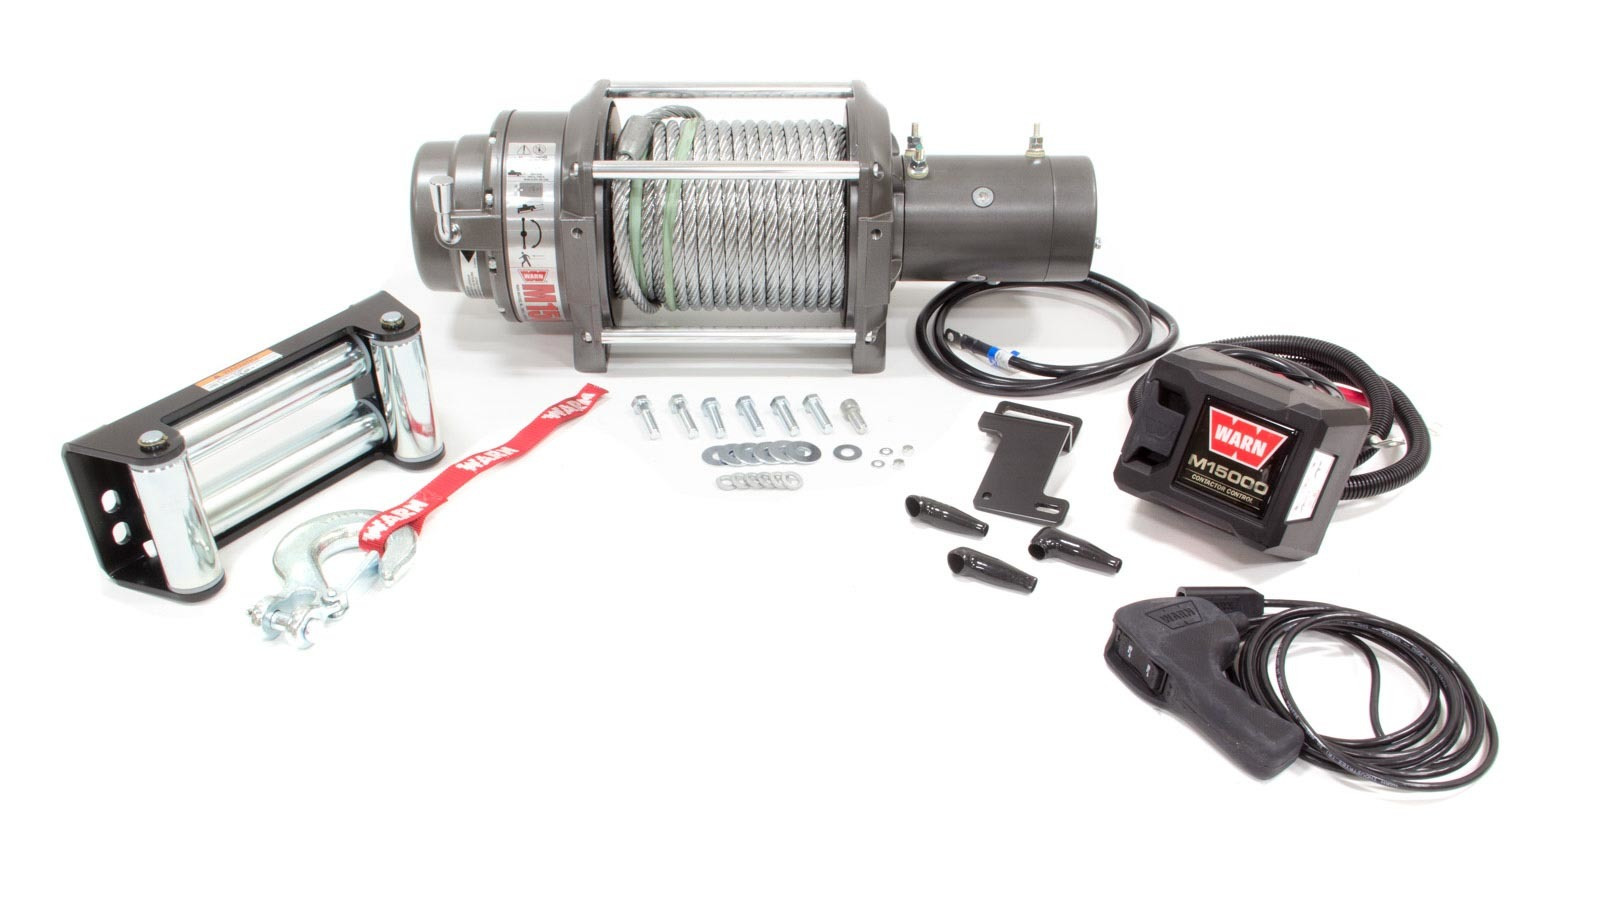 Warn 47801 Winch, M15000, 12000 lb Capacity, Roller Fairlead, 12 ft Remote, 7/16 in x 90 ft Steel Rope, 12V, Kit